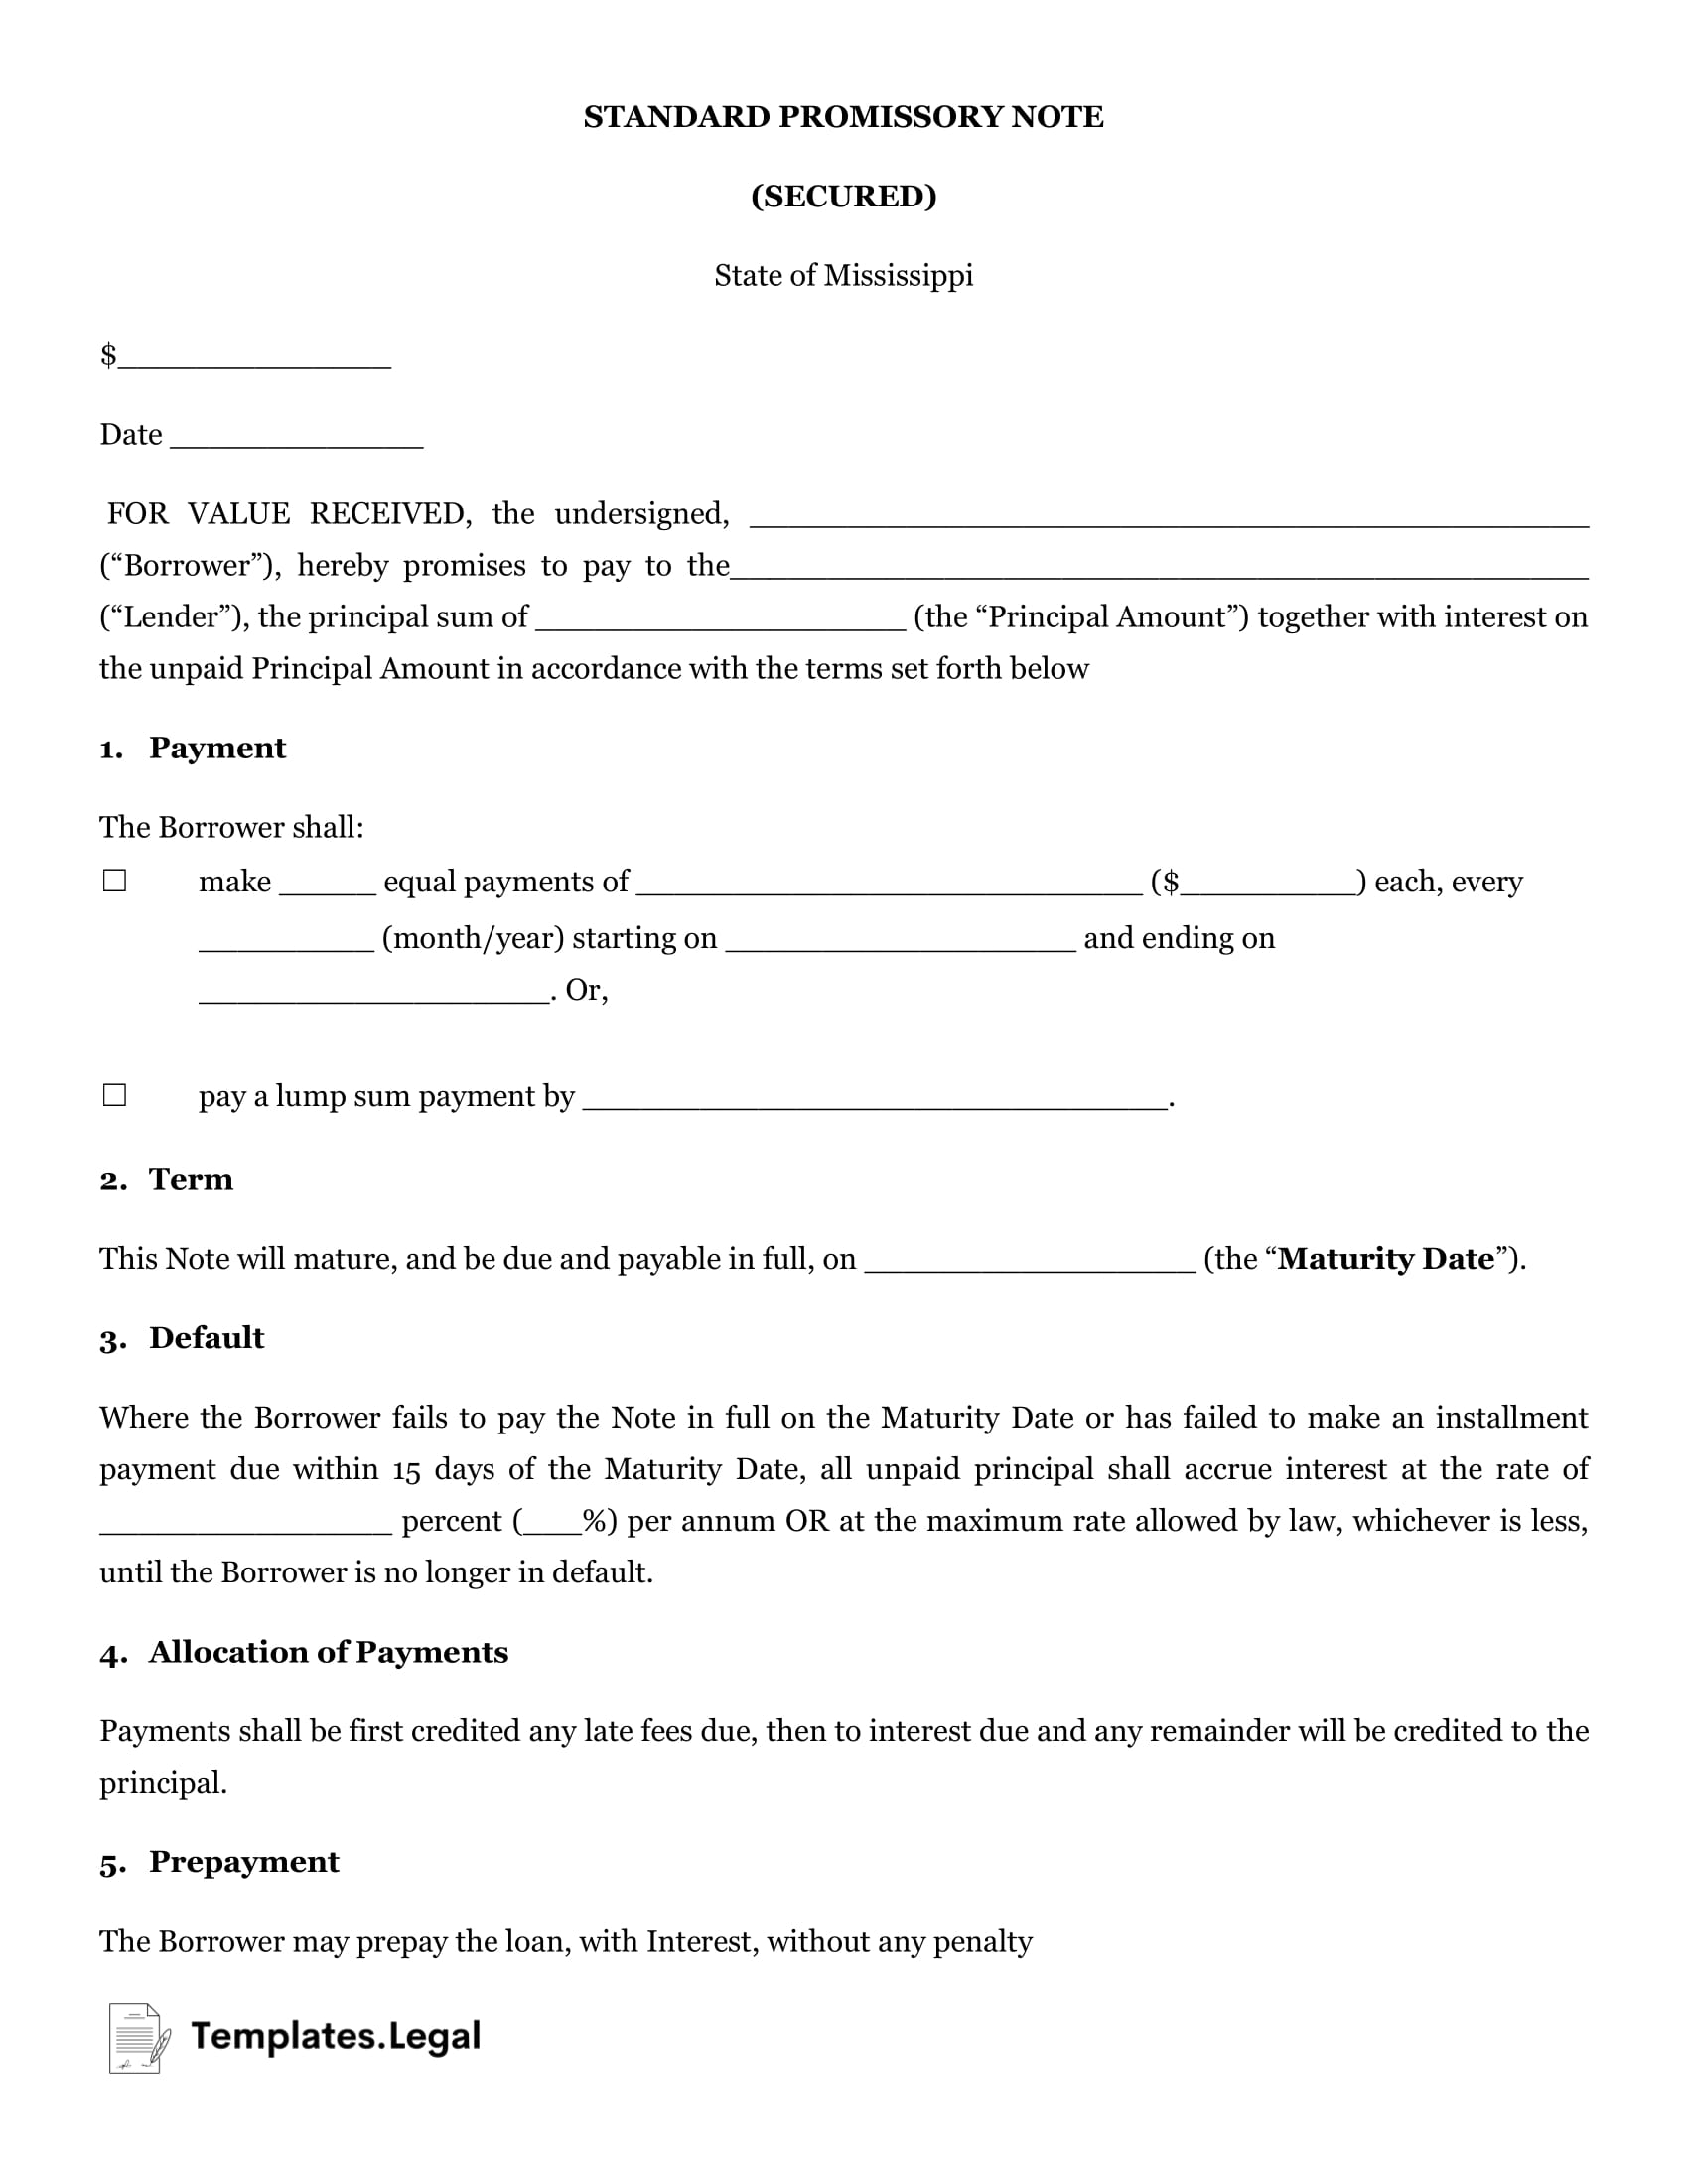 Mississippi Secured Promissory Note - Templates.Legal